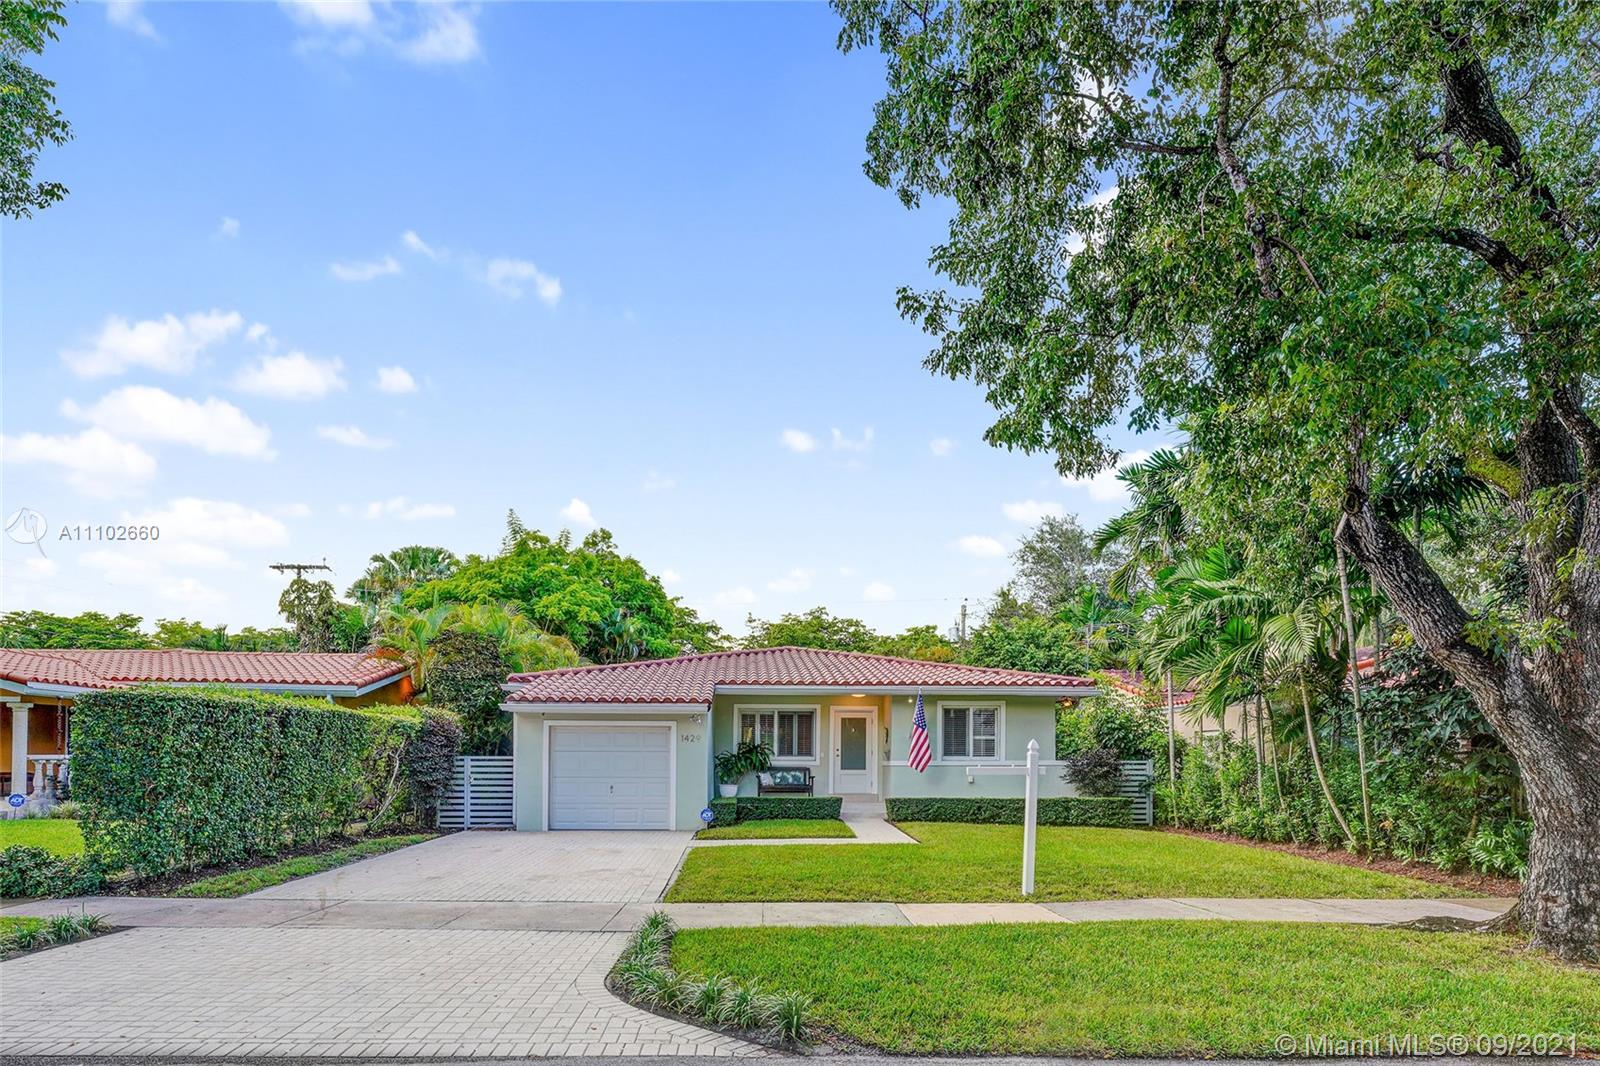 1429  Messina Ave  For Sale A11102660, FL